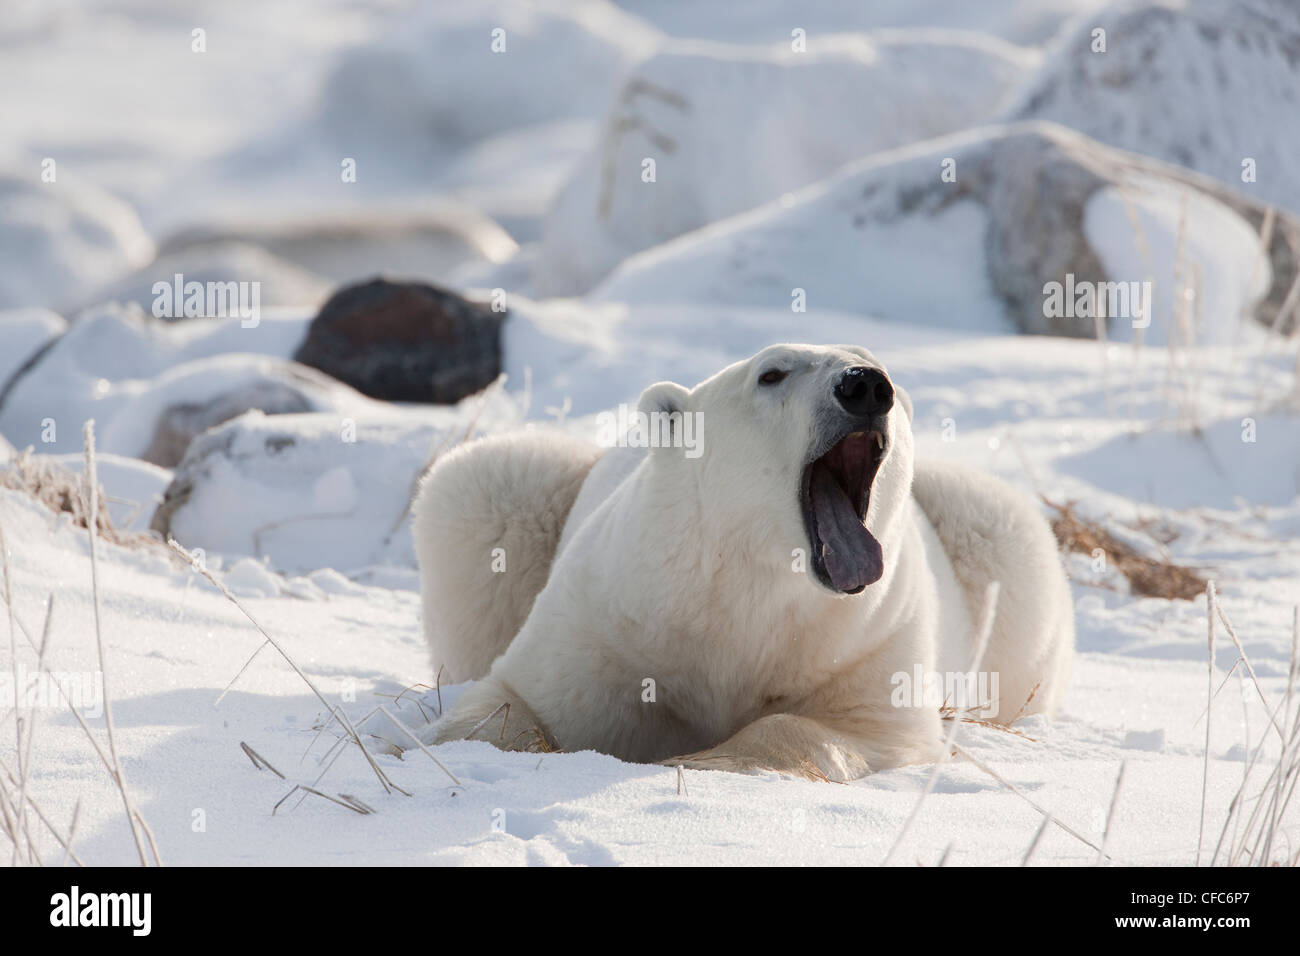 Polar Bear Ursus maritimus laying among rocks - Stock Image